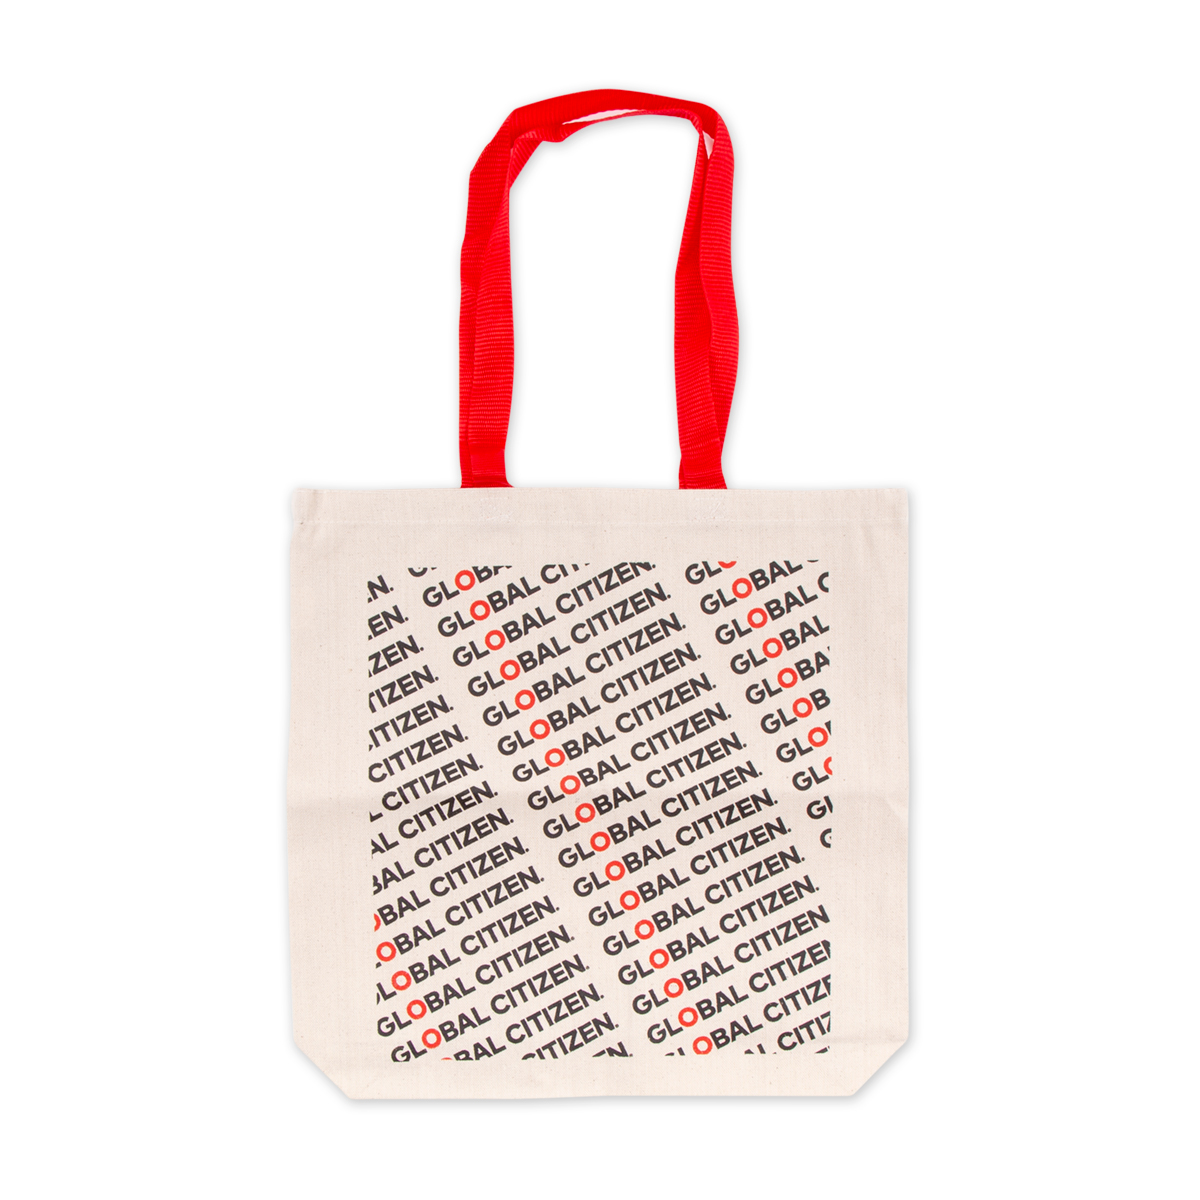 Global Citizen Tote Bag